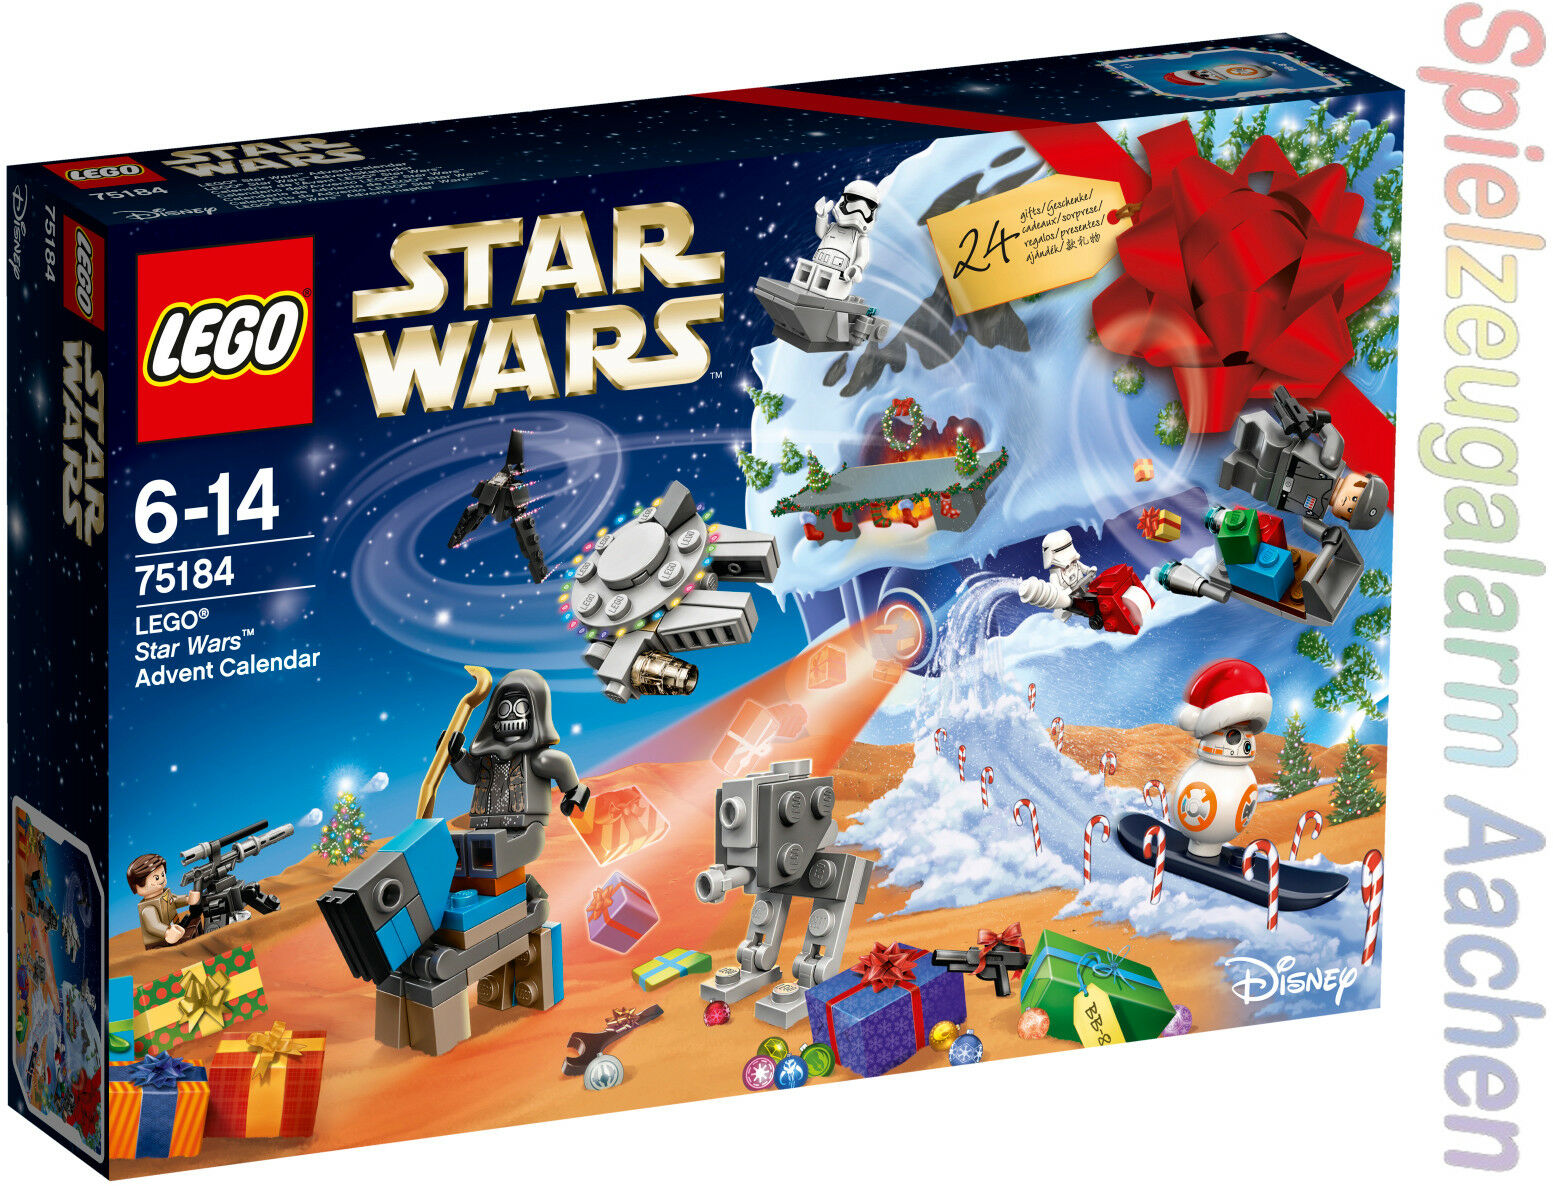 Lego ® 75184 Star Wars Wars Wars ™ calendario de Adviento de l 'Avent Advent Calendar 2017 6bf354